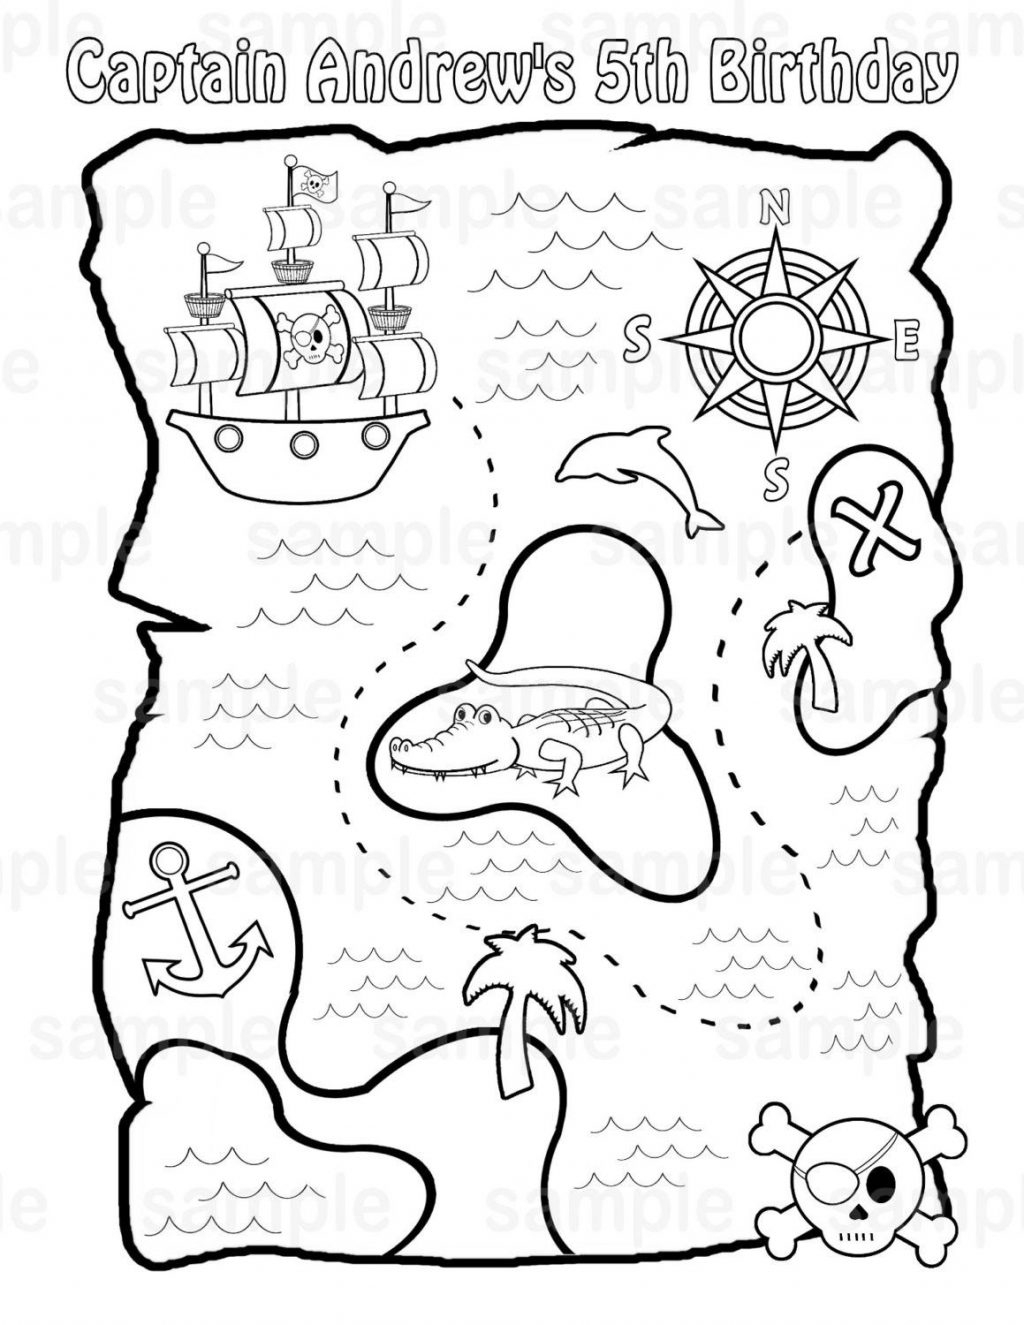 Coloring Pages ~ Treasure Map Coloring Pages Free Page Preschool - Free Printable Pirate Maps